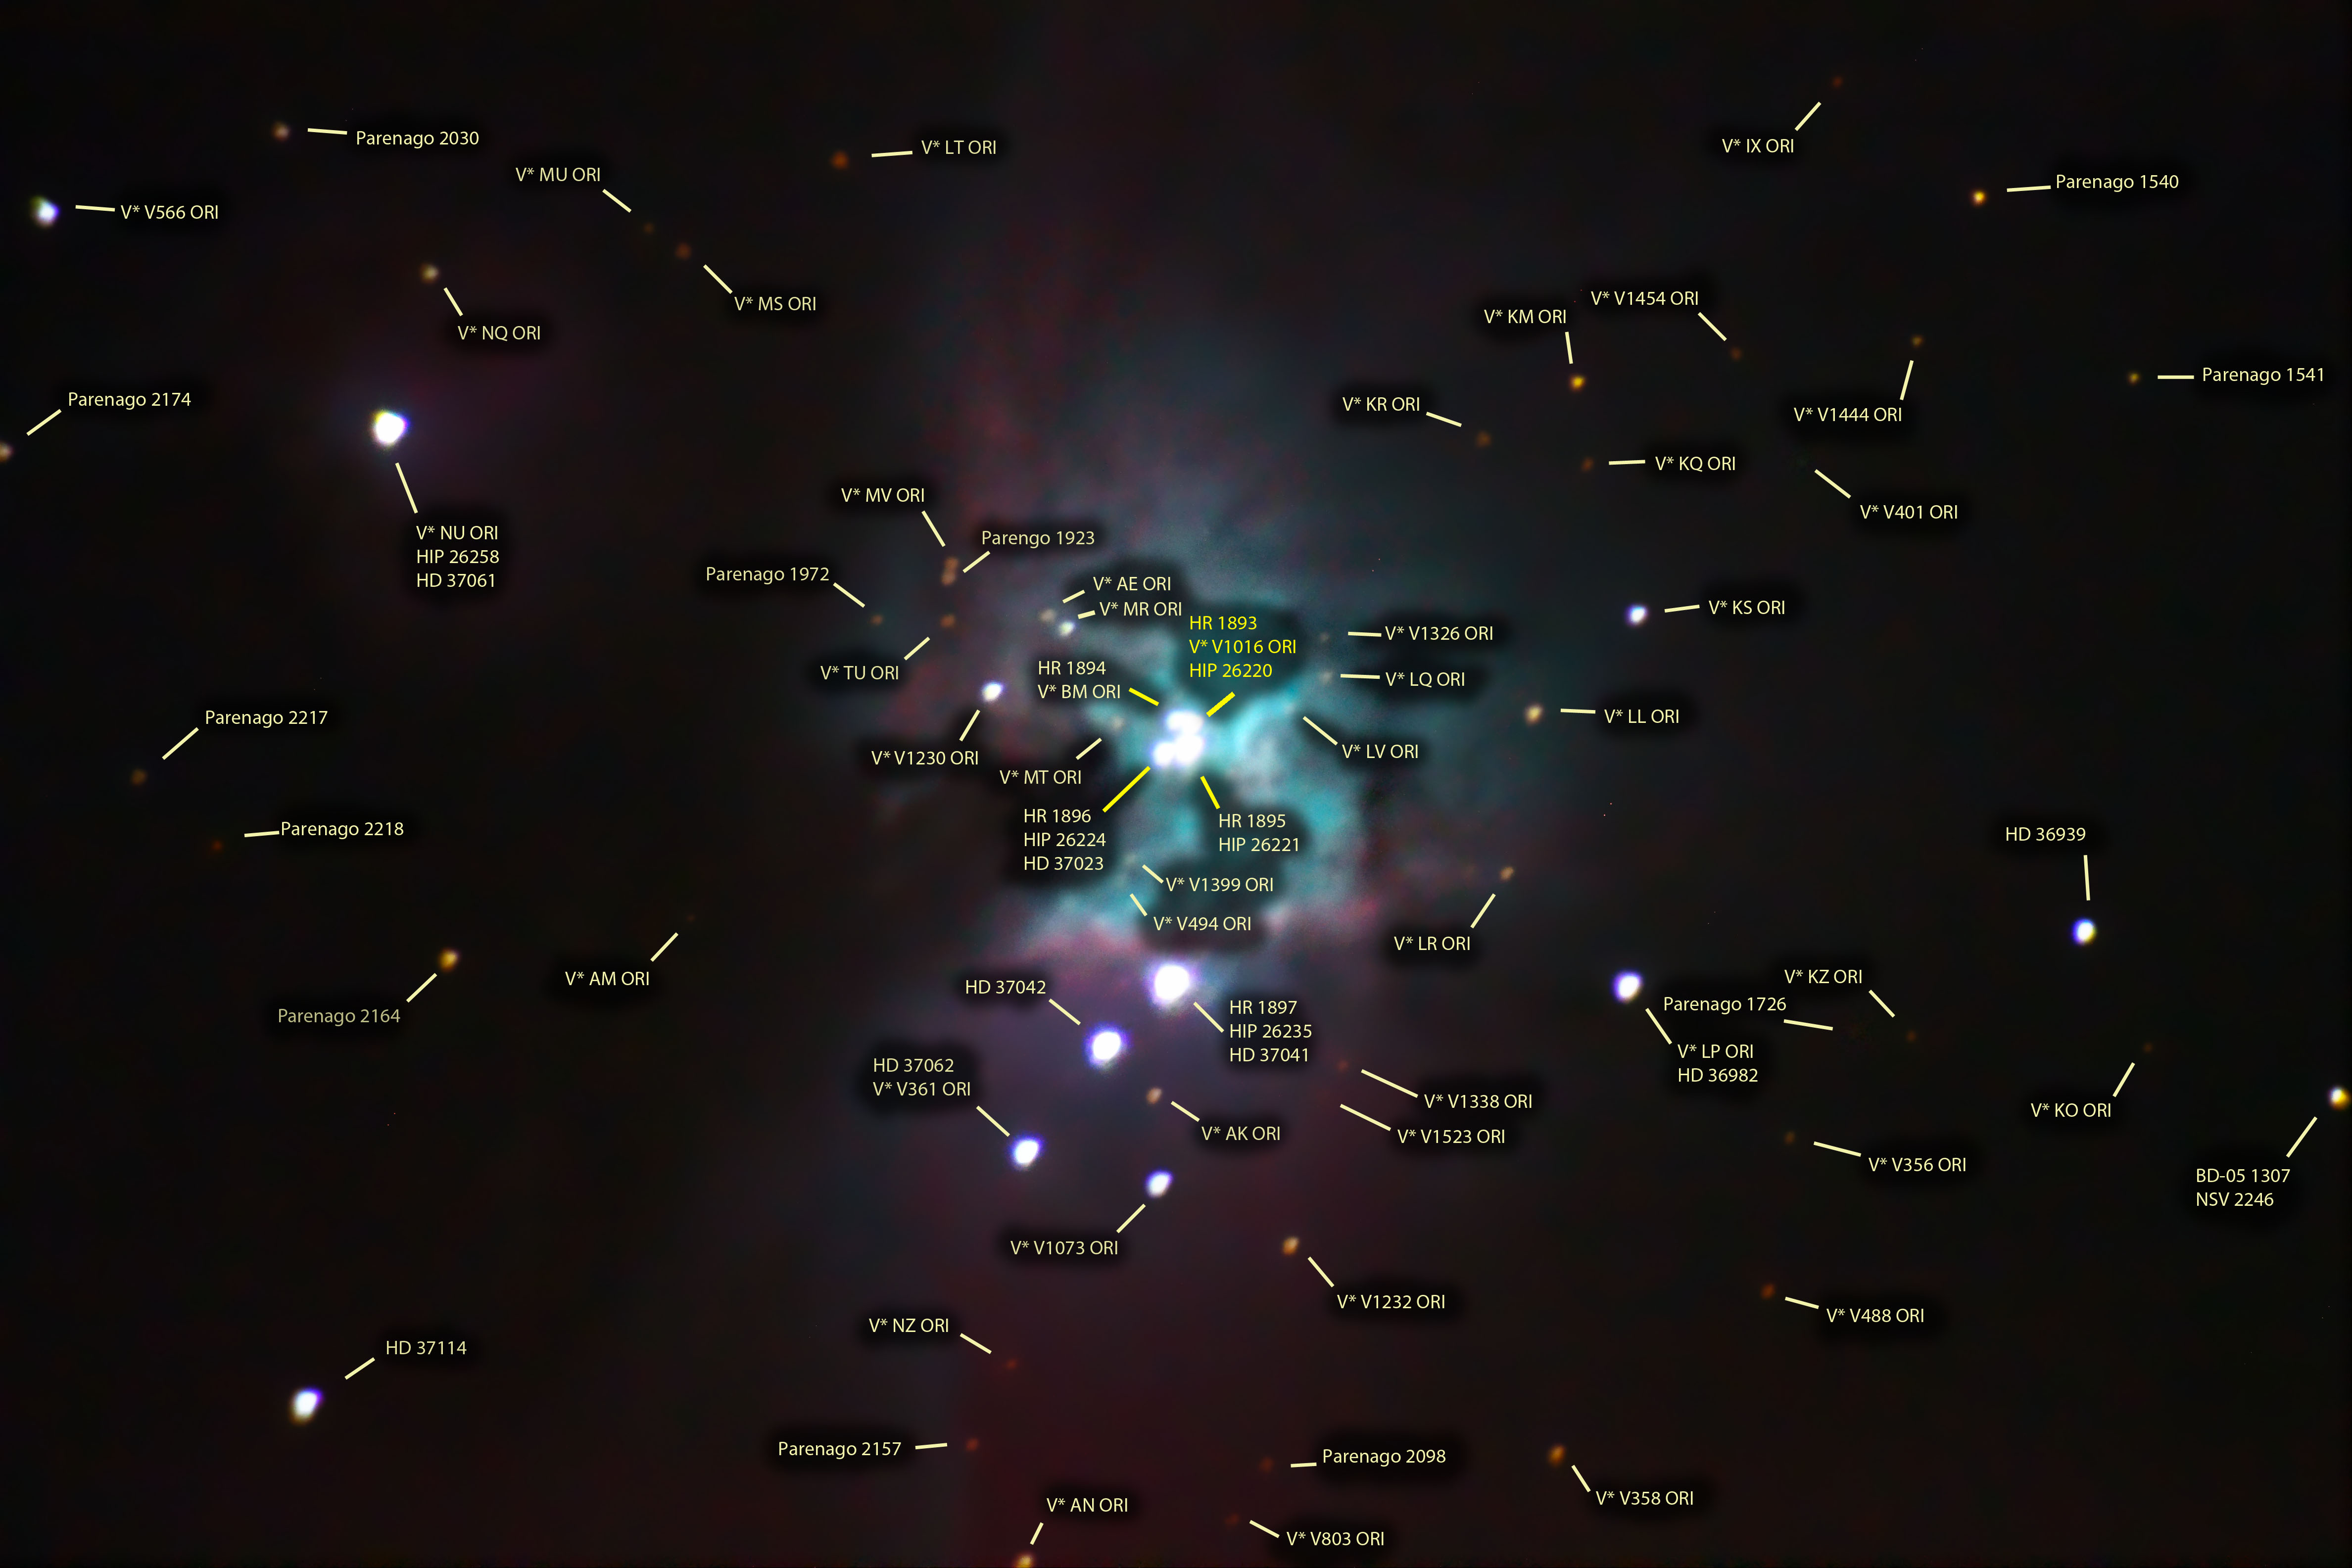 Extended annotated image of The Great Nebula in Orion